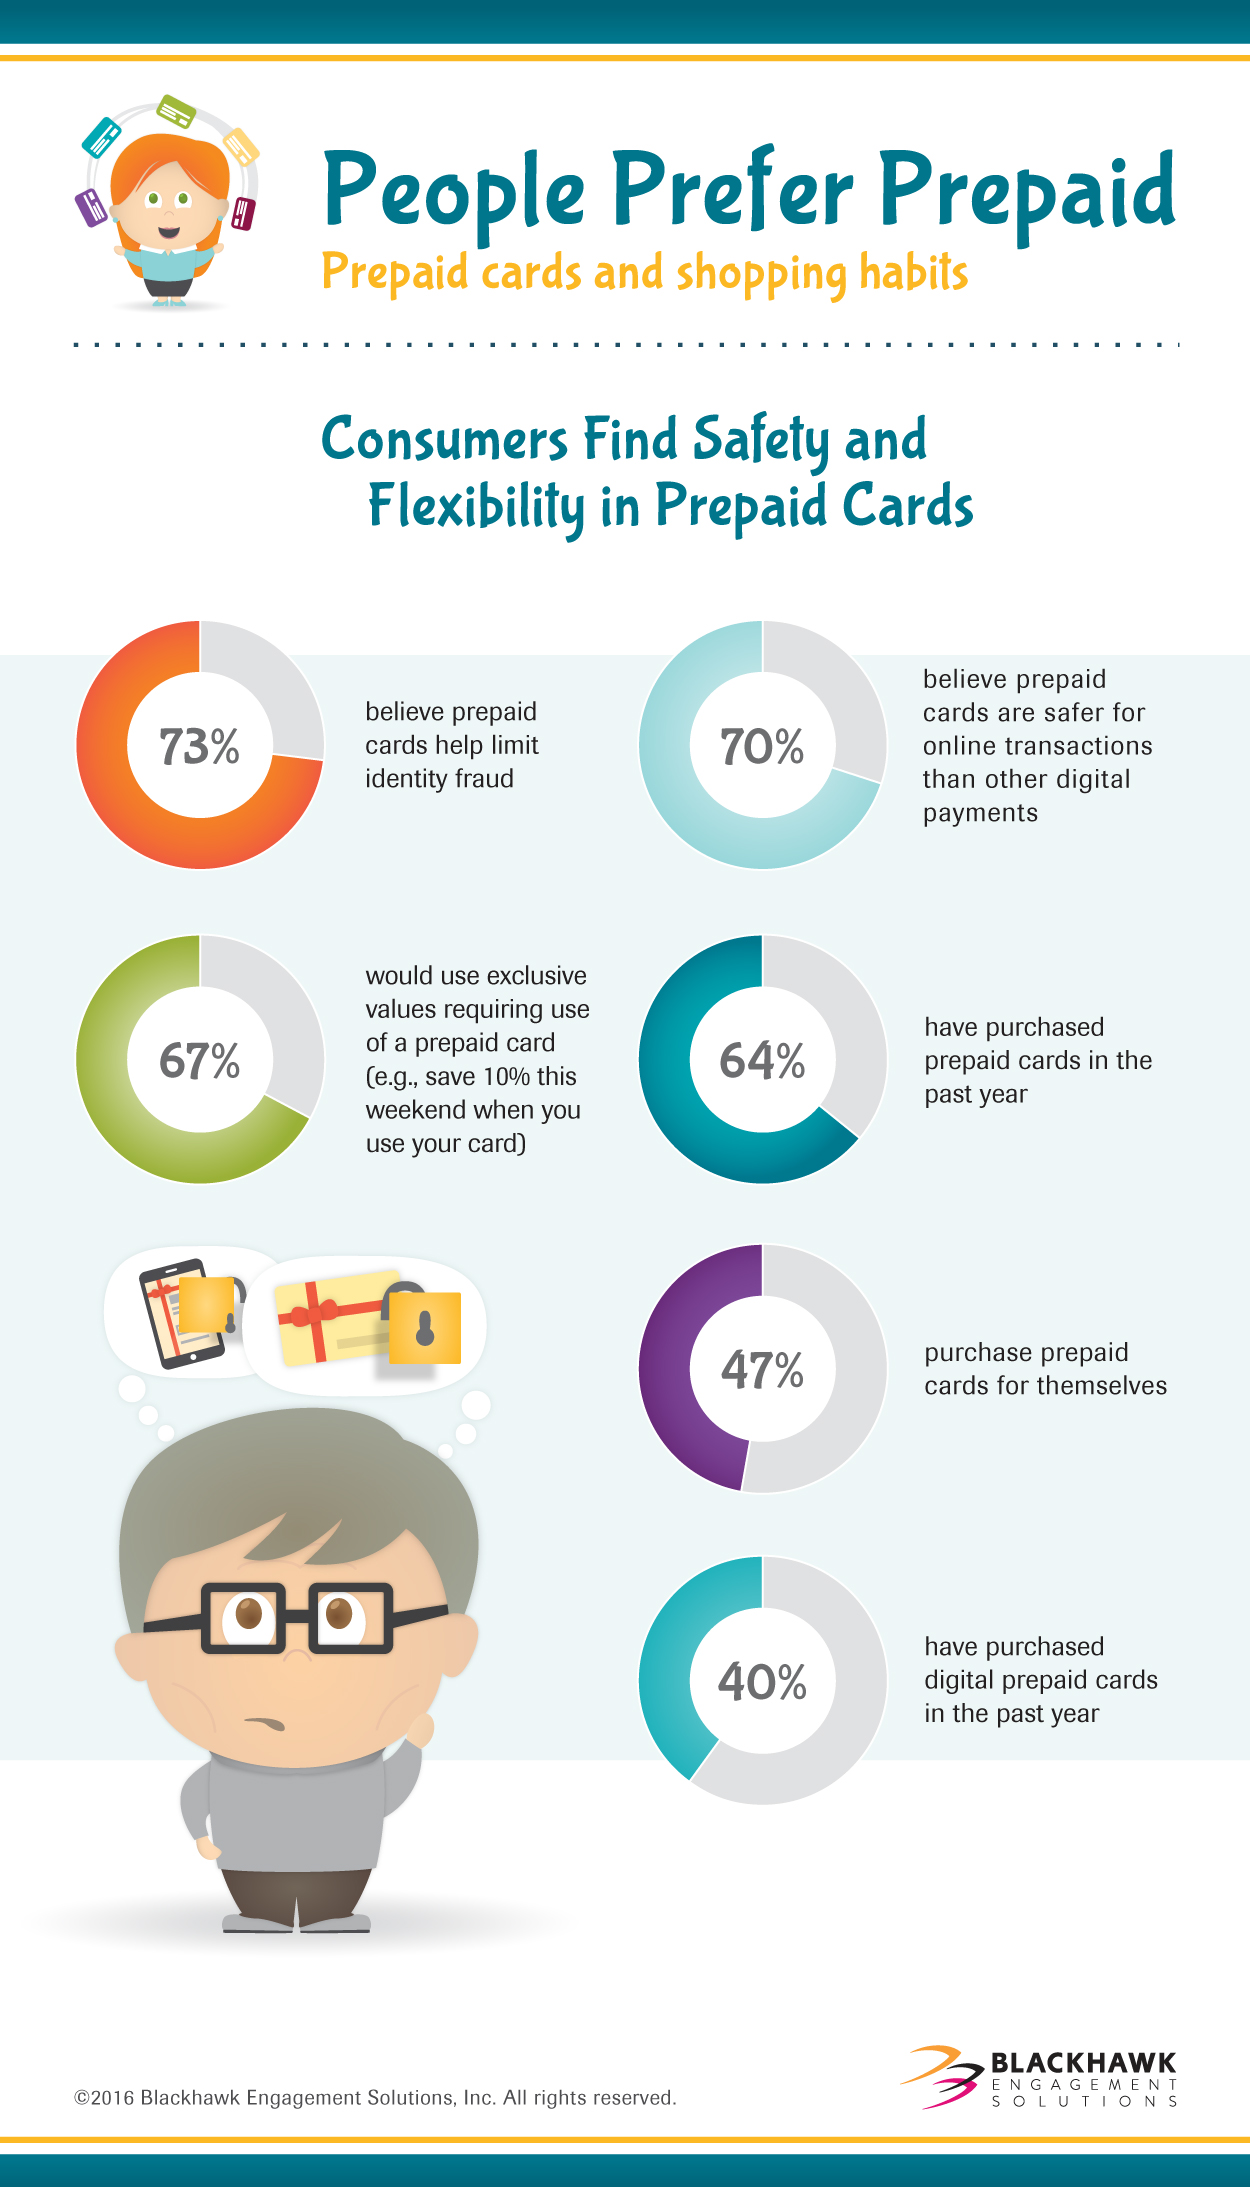 Consumers Find Safety and Flexibility in Prepaid Cards